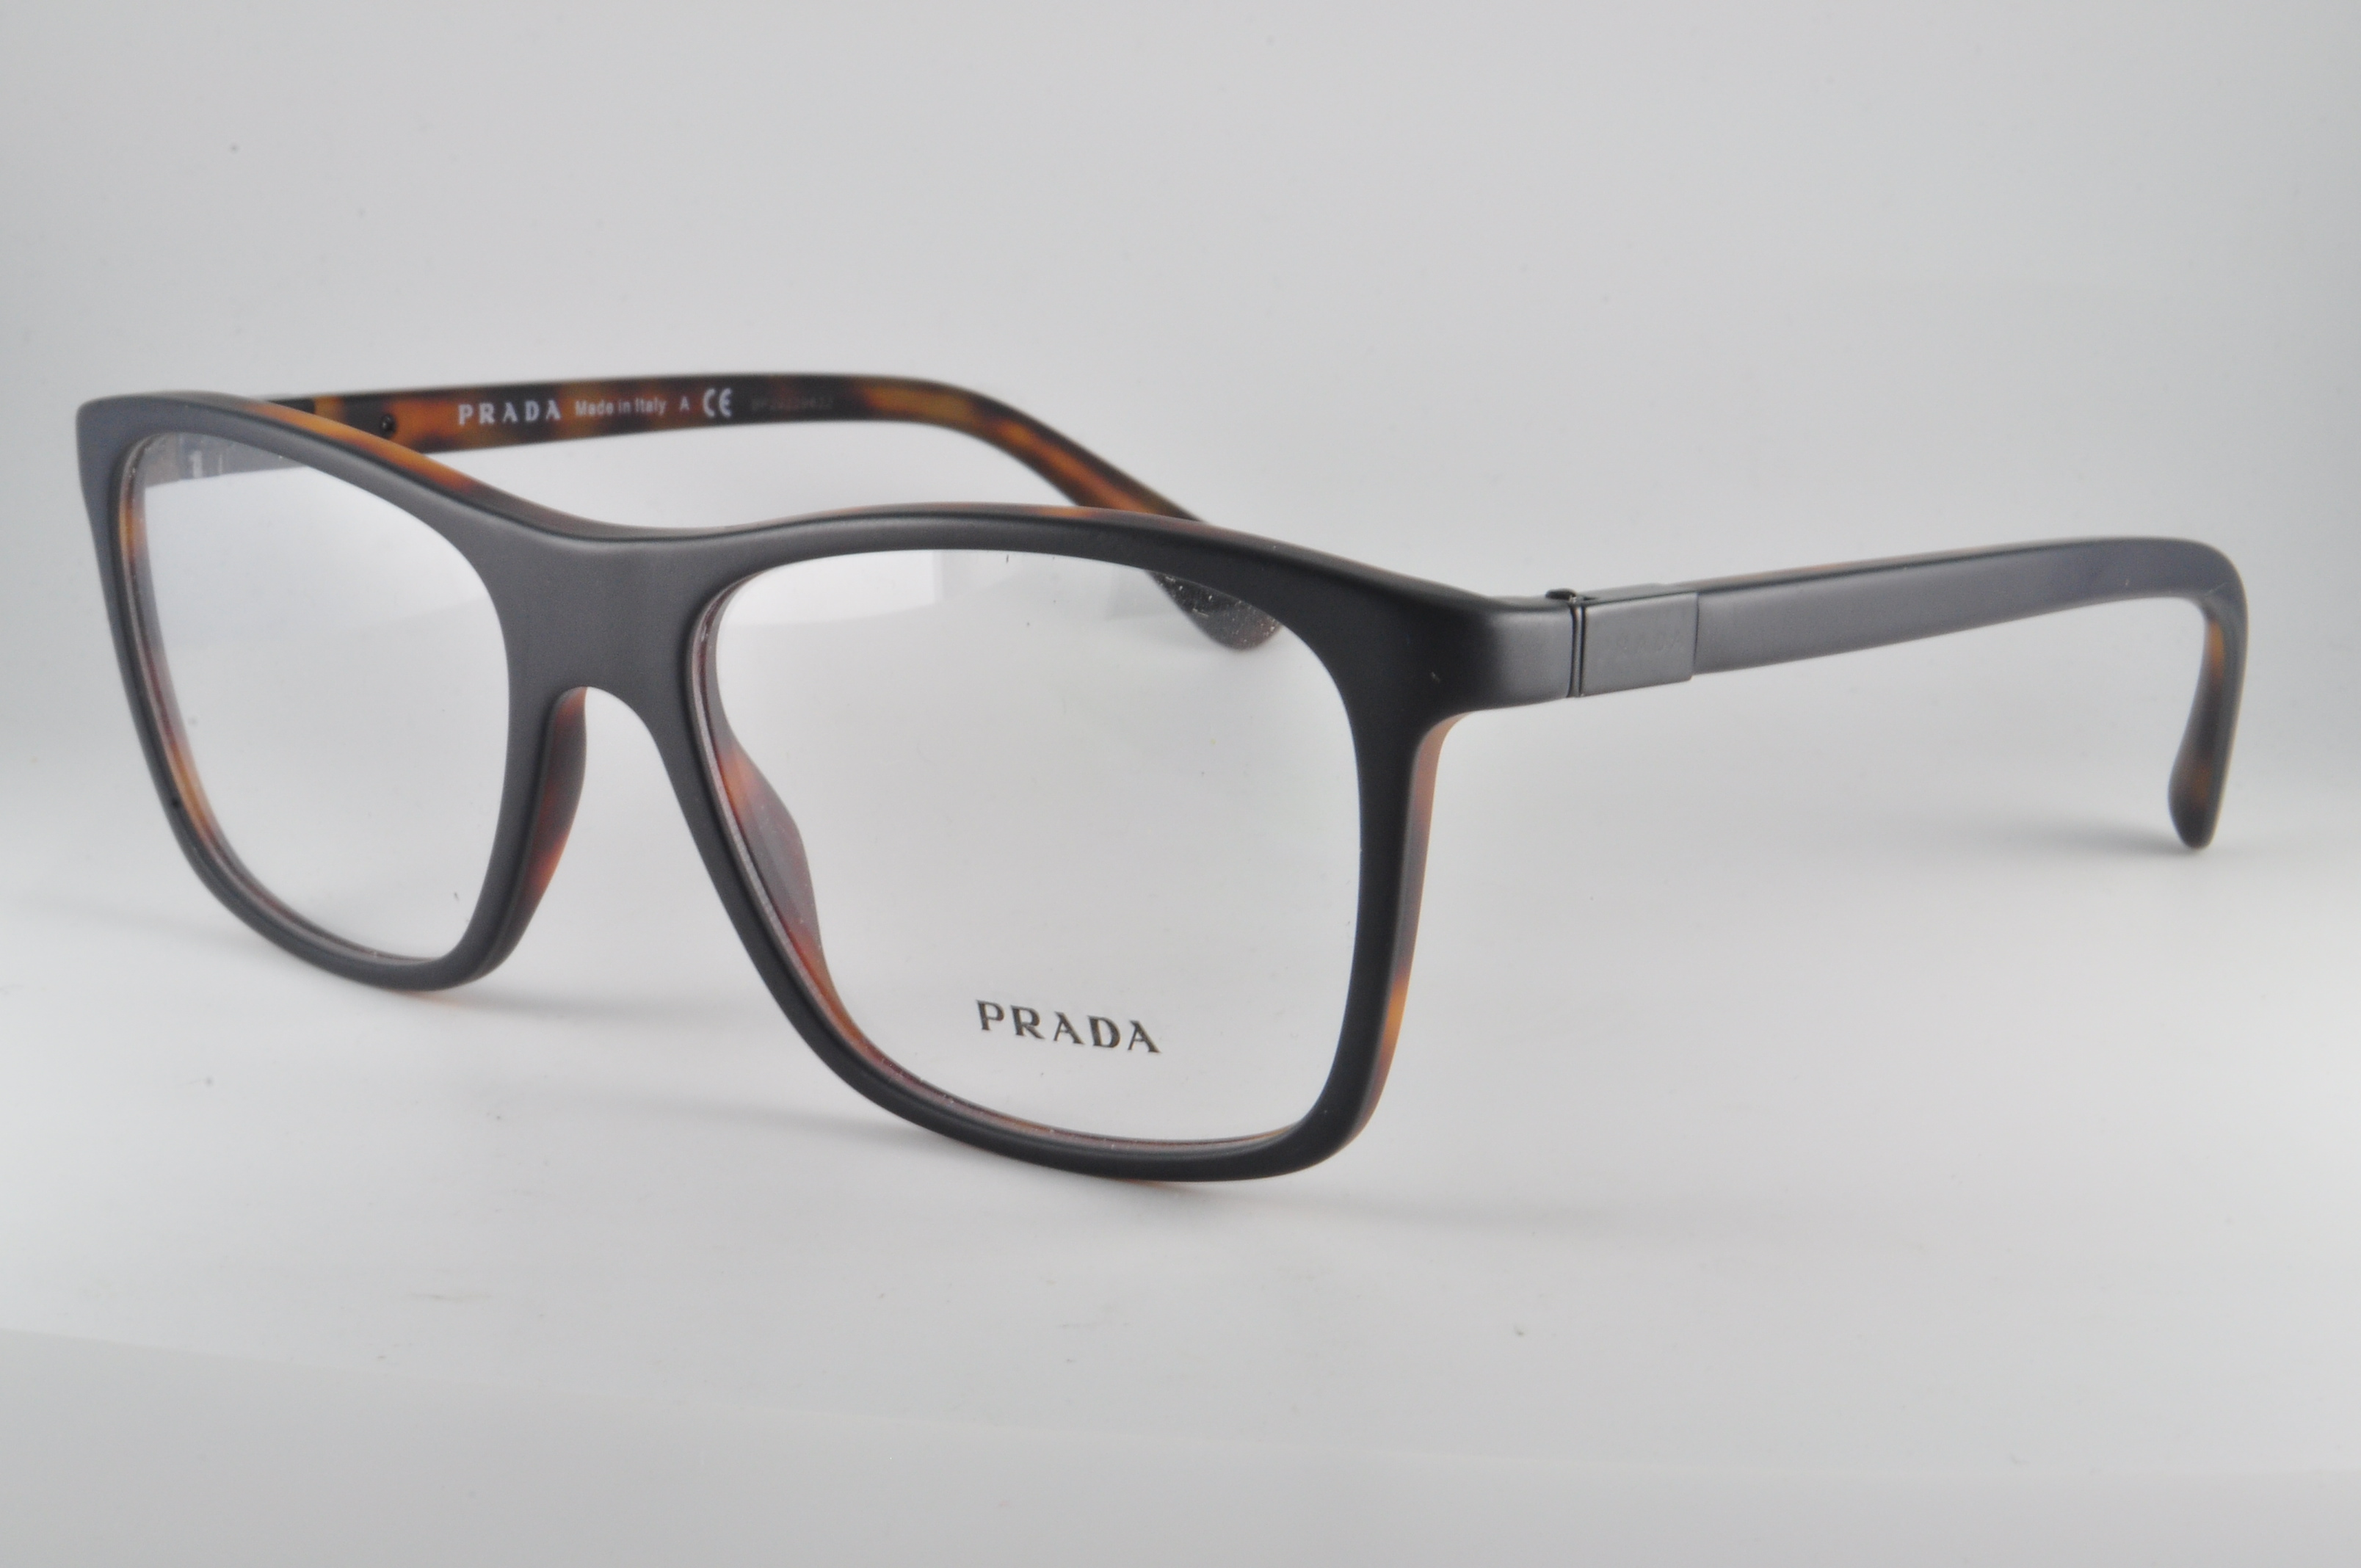 PRADA RX Eyeglasses Frames VPR 05s Ubh-1o1 55x17 Matte Top Black on ...